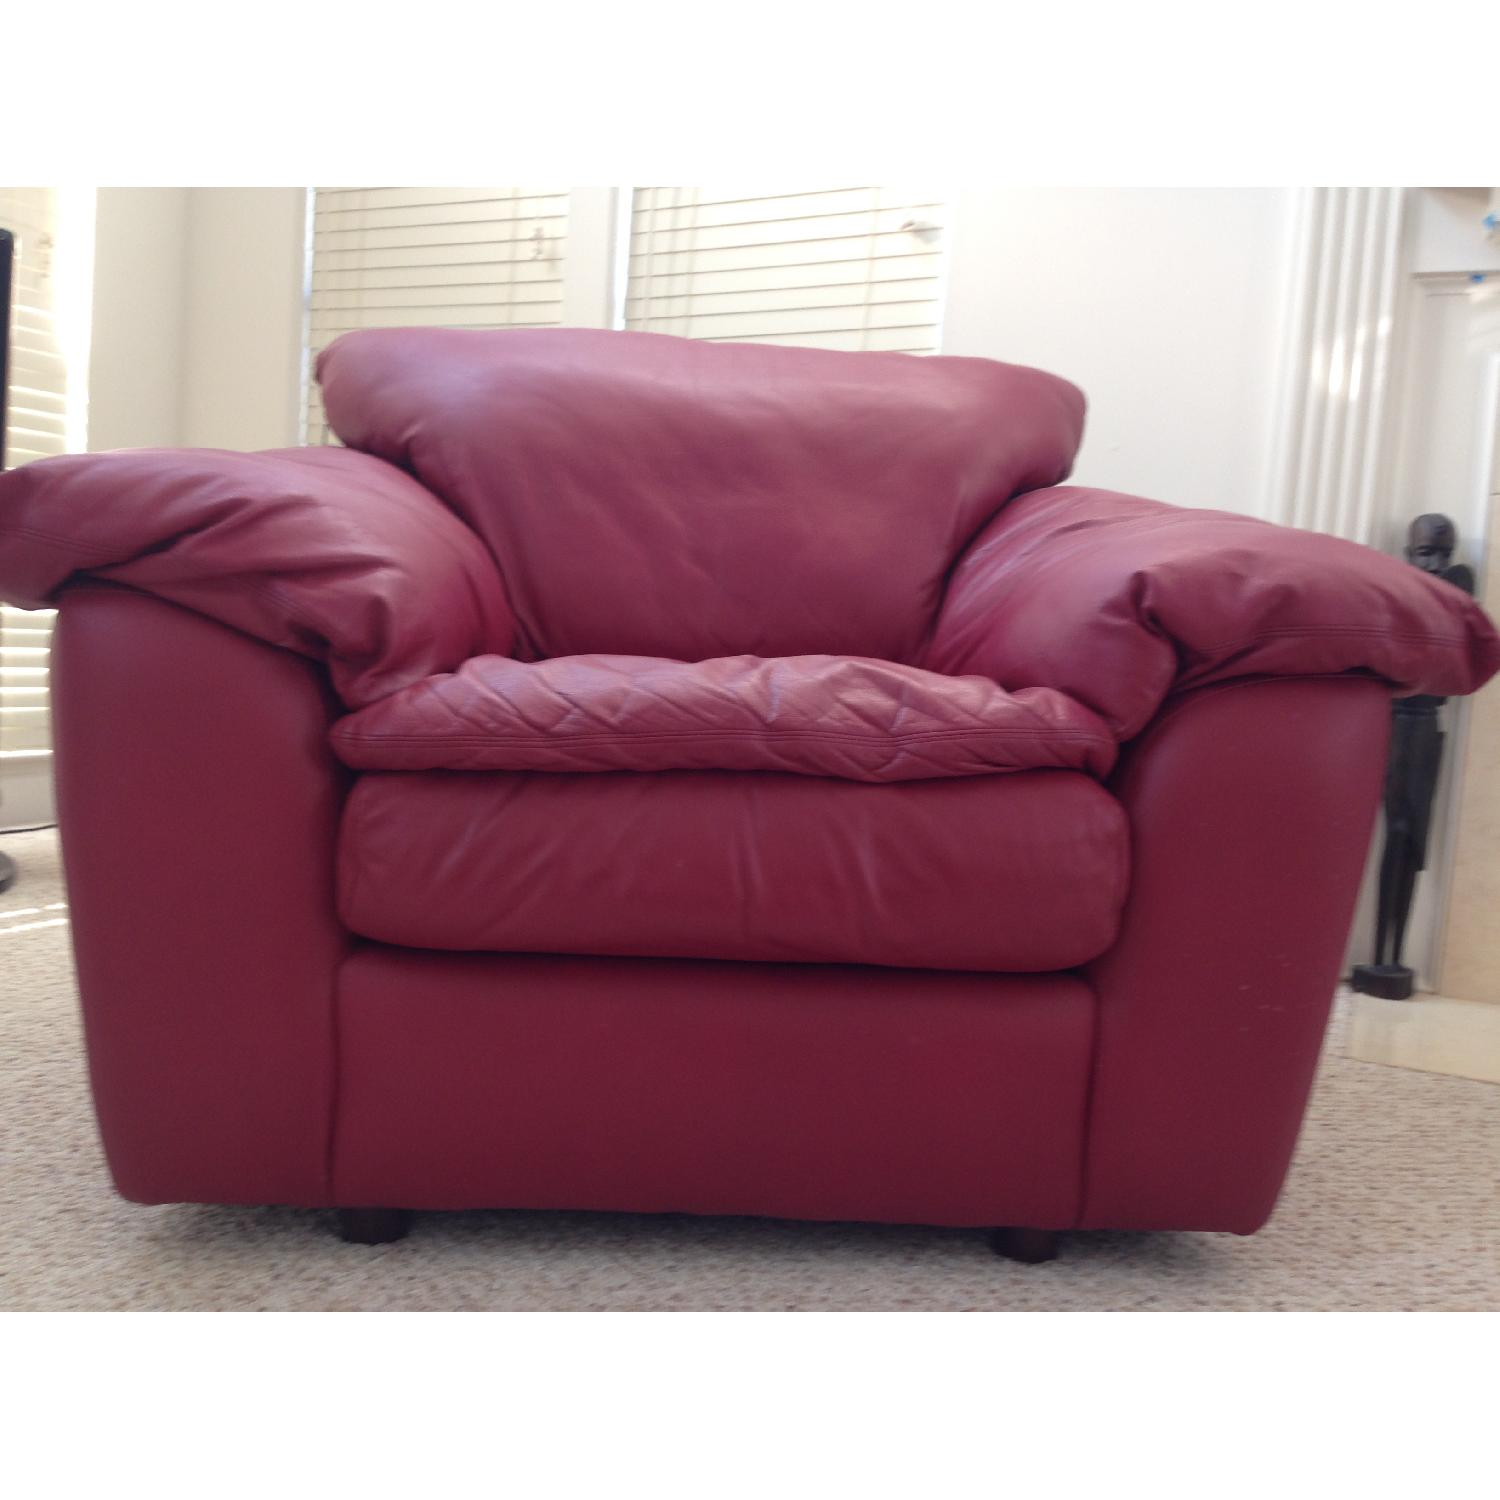 Century Leather Red Chair - image-1